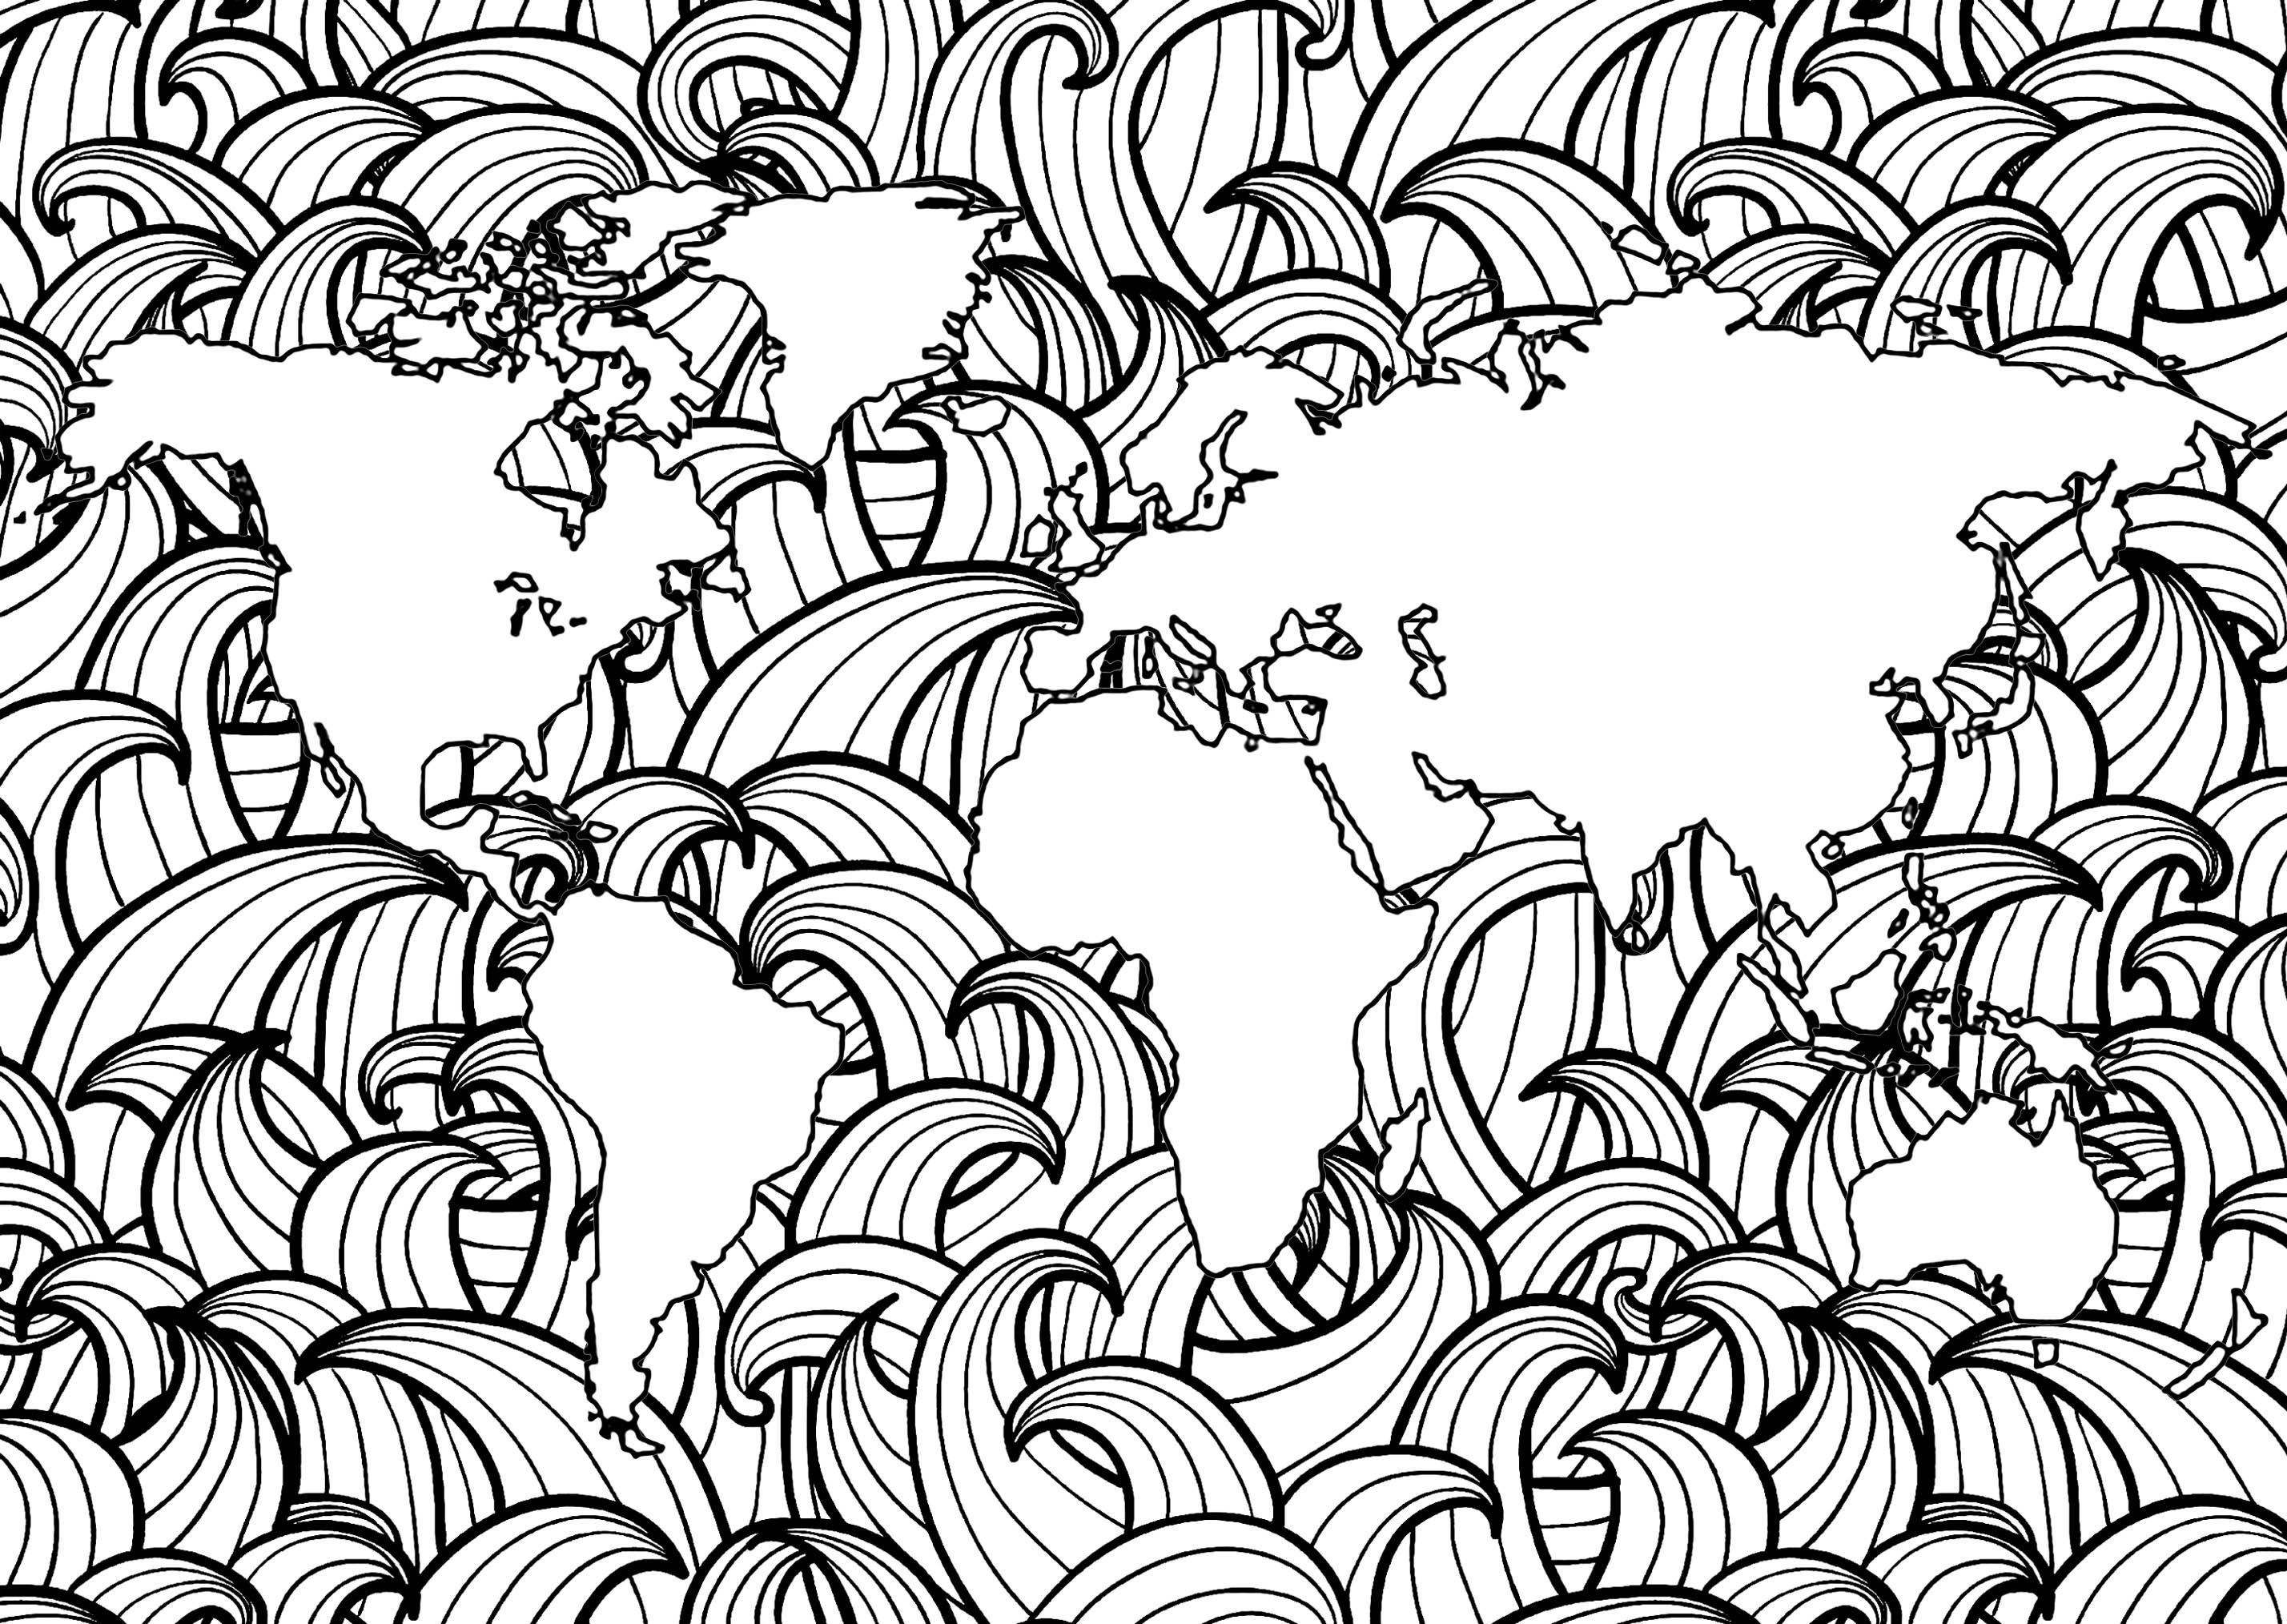 Earth With Waves Zen And Anti Stress Coloring Pages For Adults